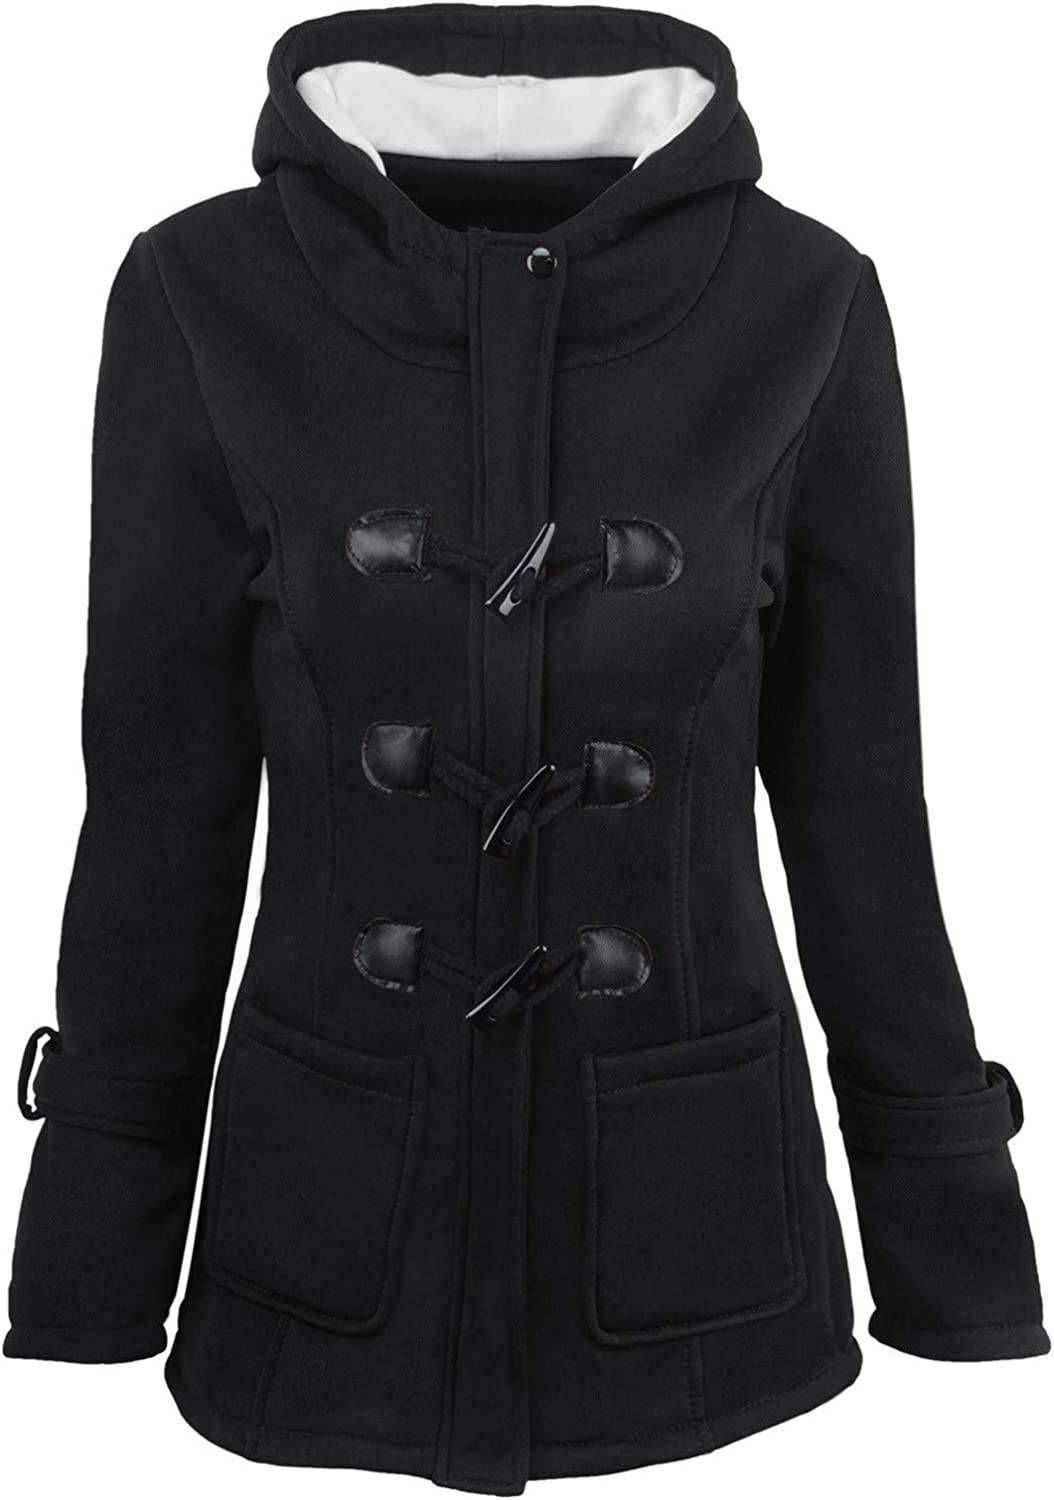 Forwelly Women Winter Thicken Lined Jacket Solid Color Horn Buttons Hooded Coat Plus Size Overcoat